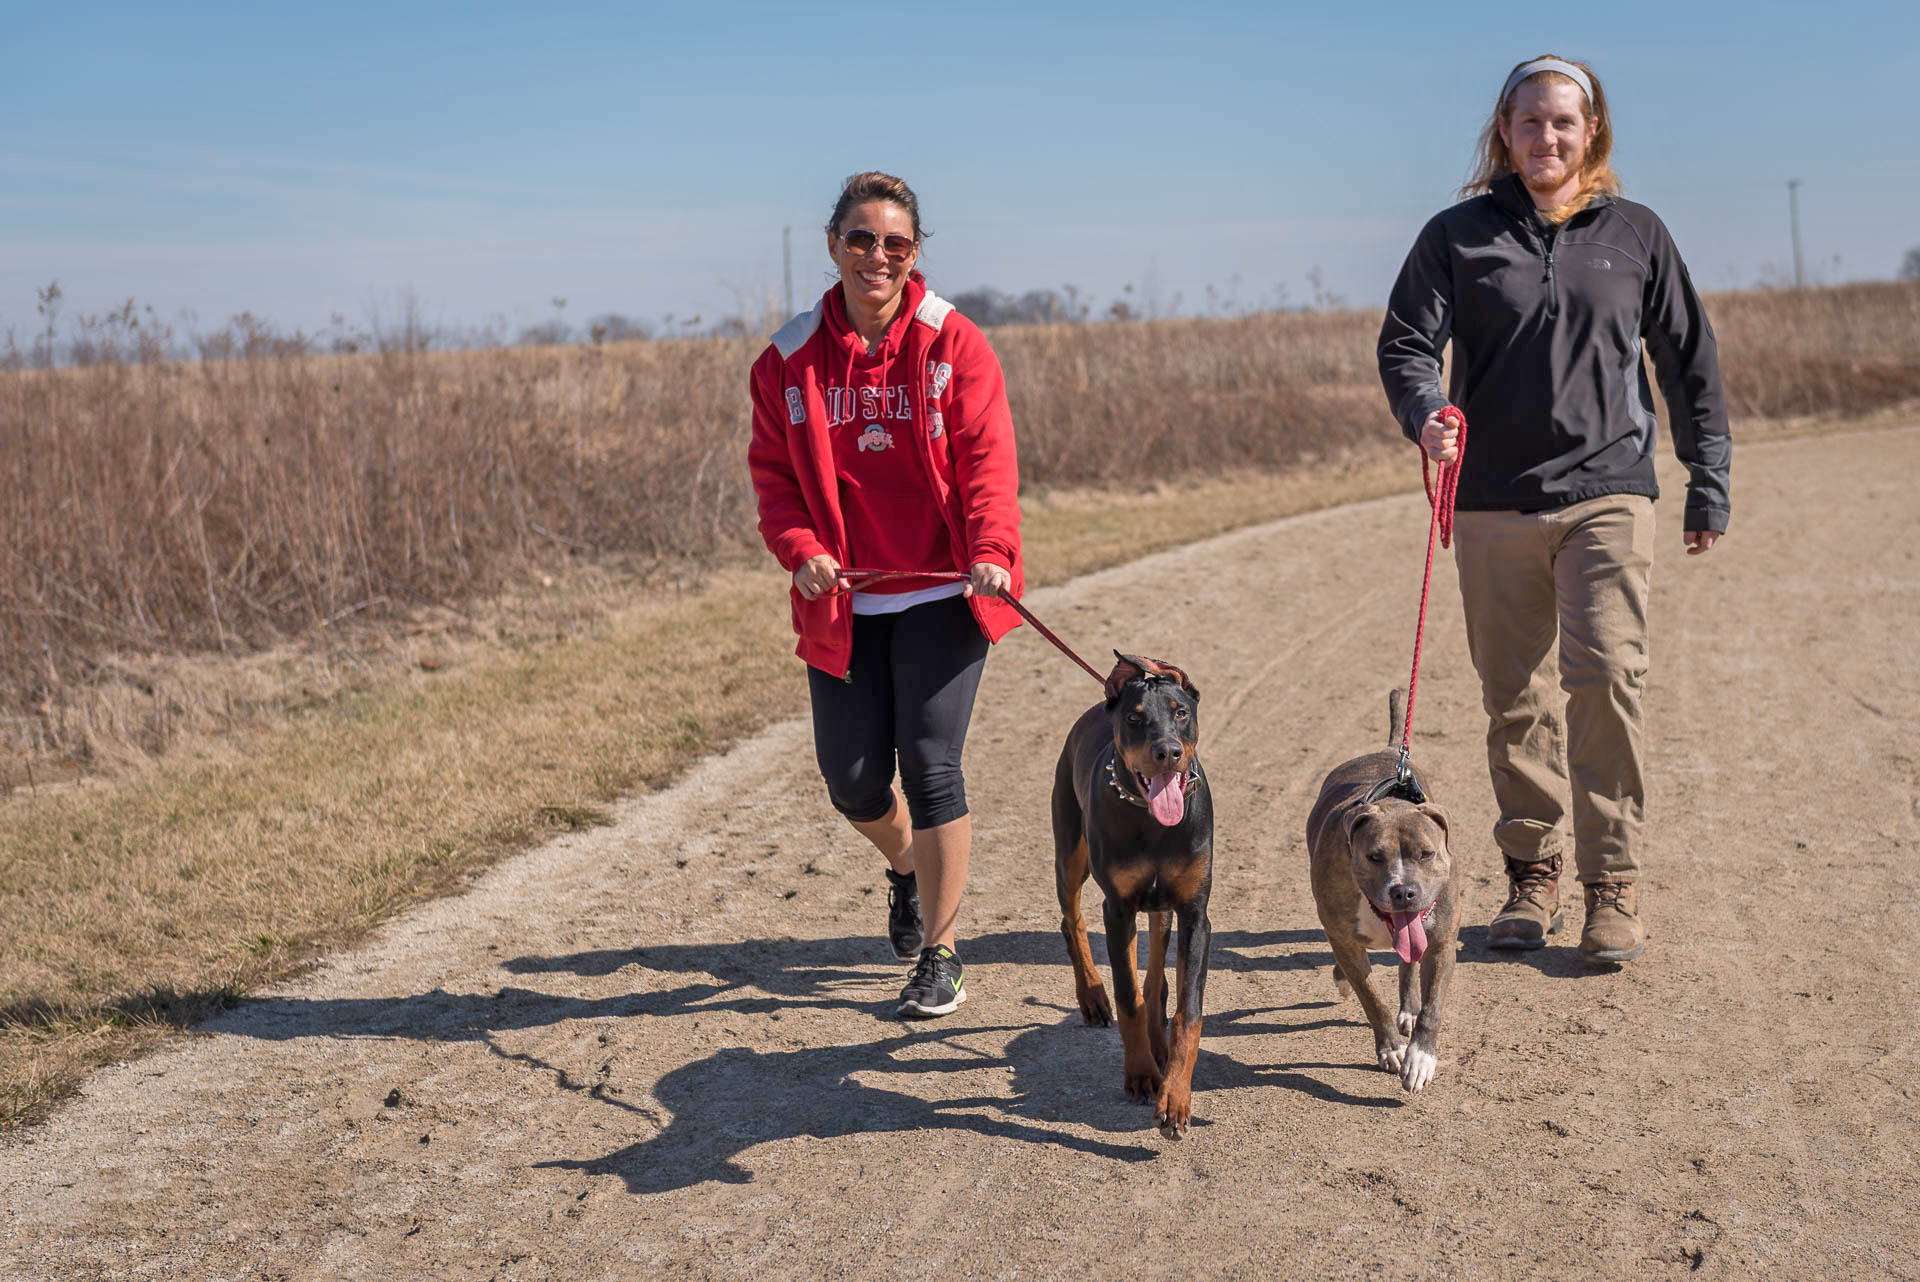 People walk their dogs on the Darby Creek Greenway Trail at Battelle Darby Creek. Photo by John Nixon.